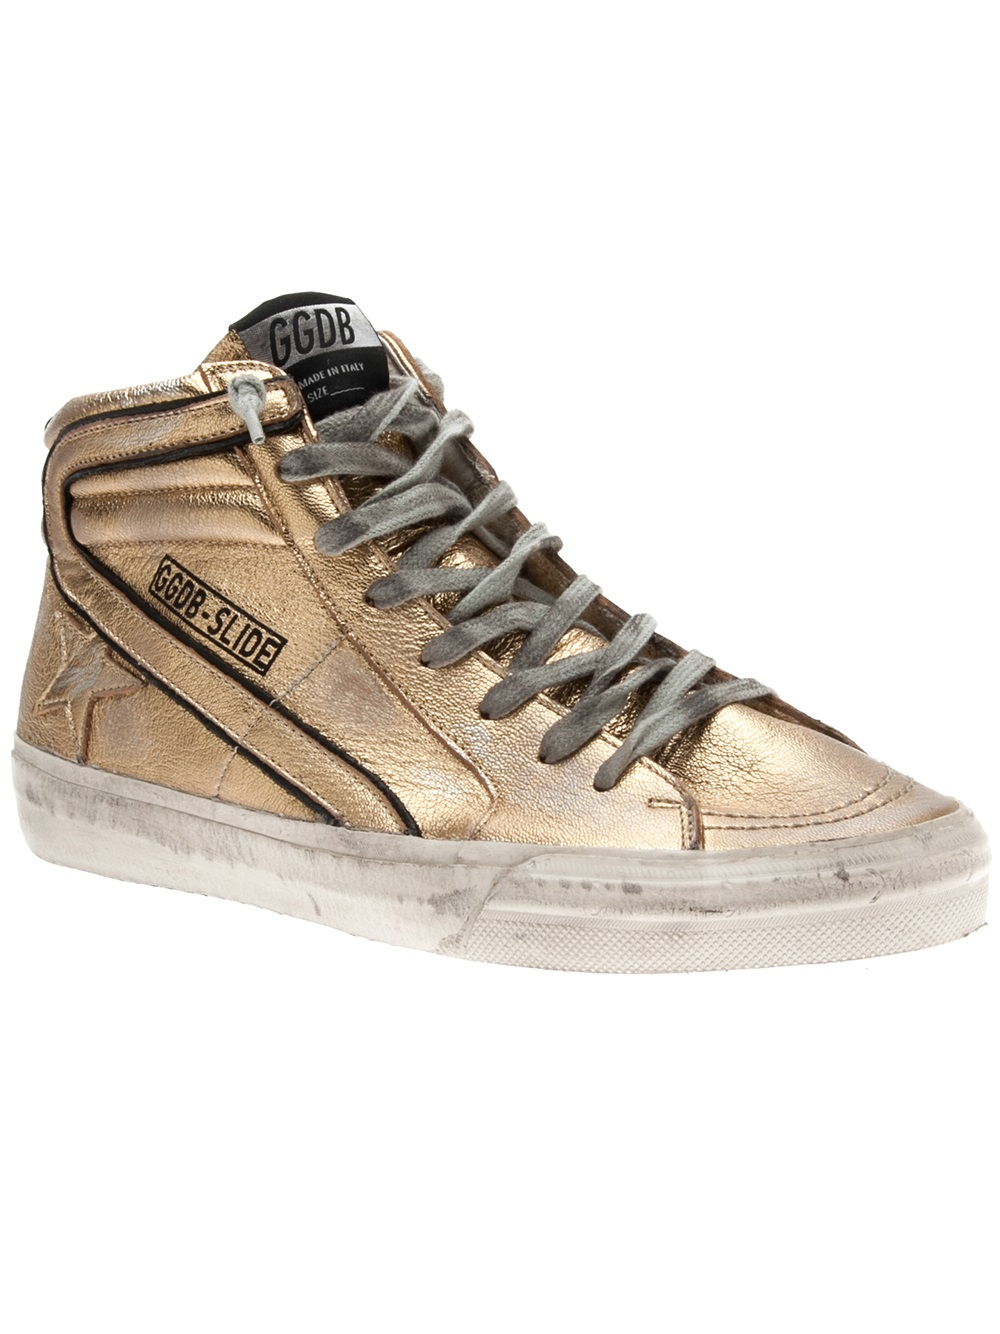 lyst golden goose deluxe brand golden goose deluxe brand slide high top sneaker in metallic. Black Bedroom Furniture Sets. Home Design Ideas